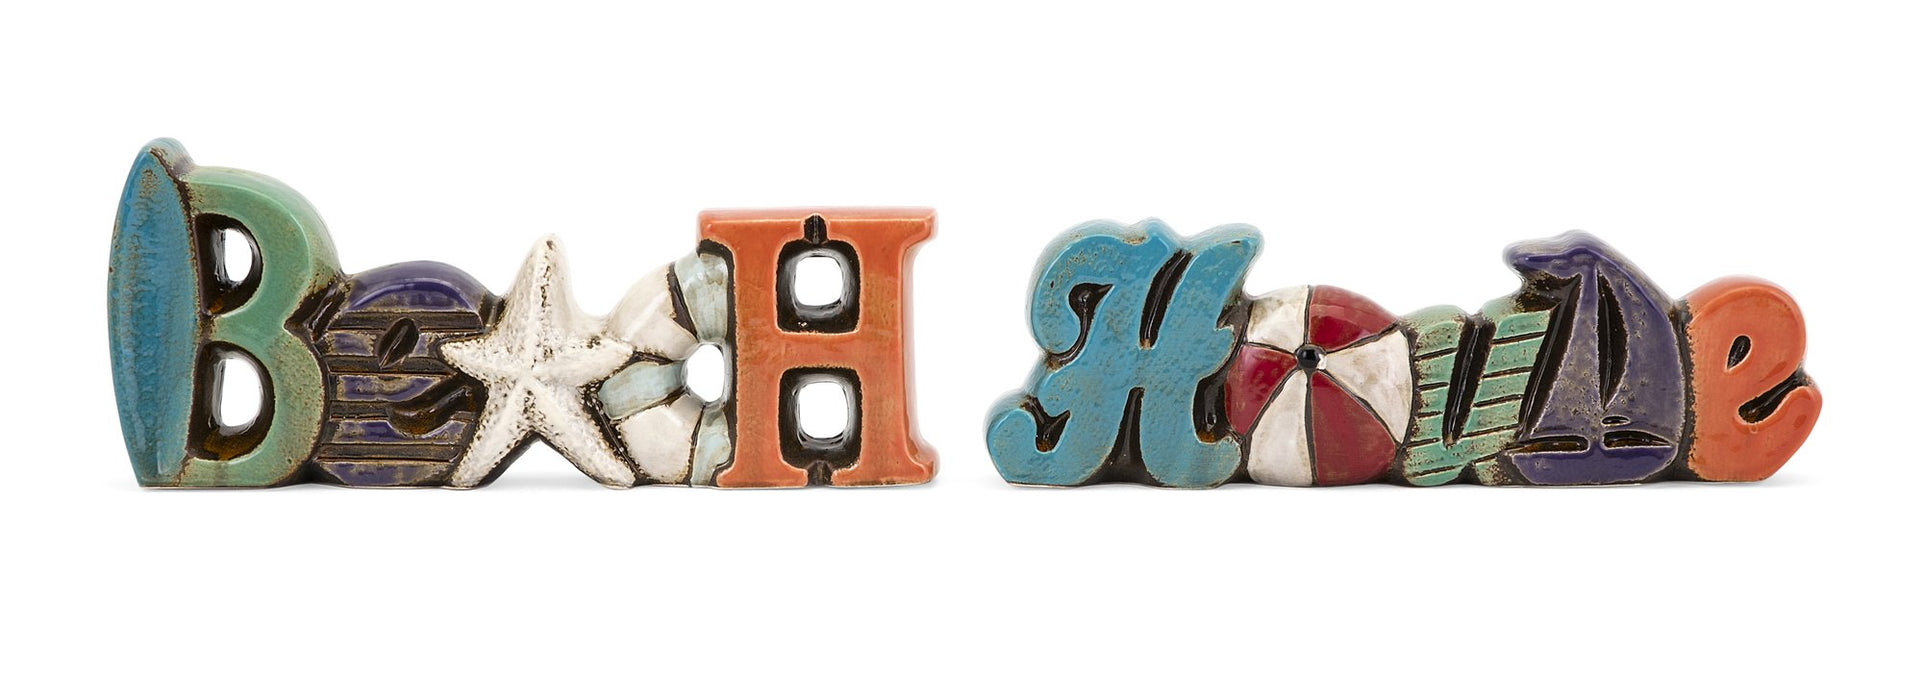 Beach-House-Ceramic-Statuary